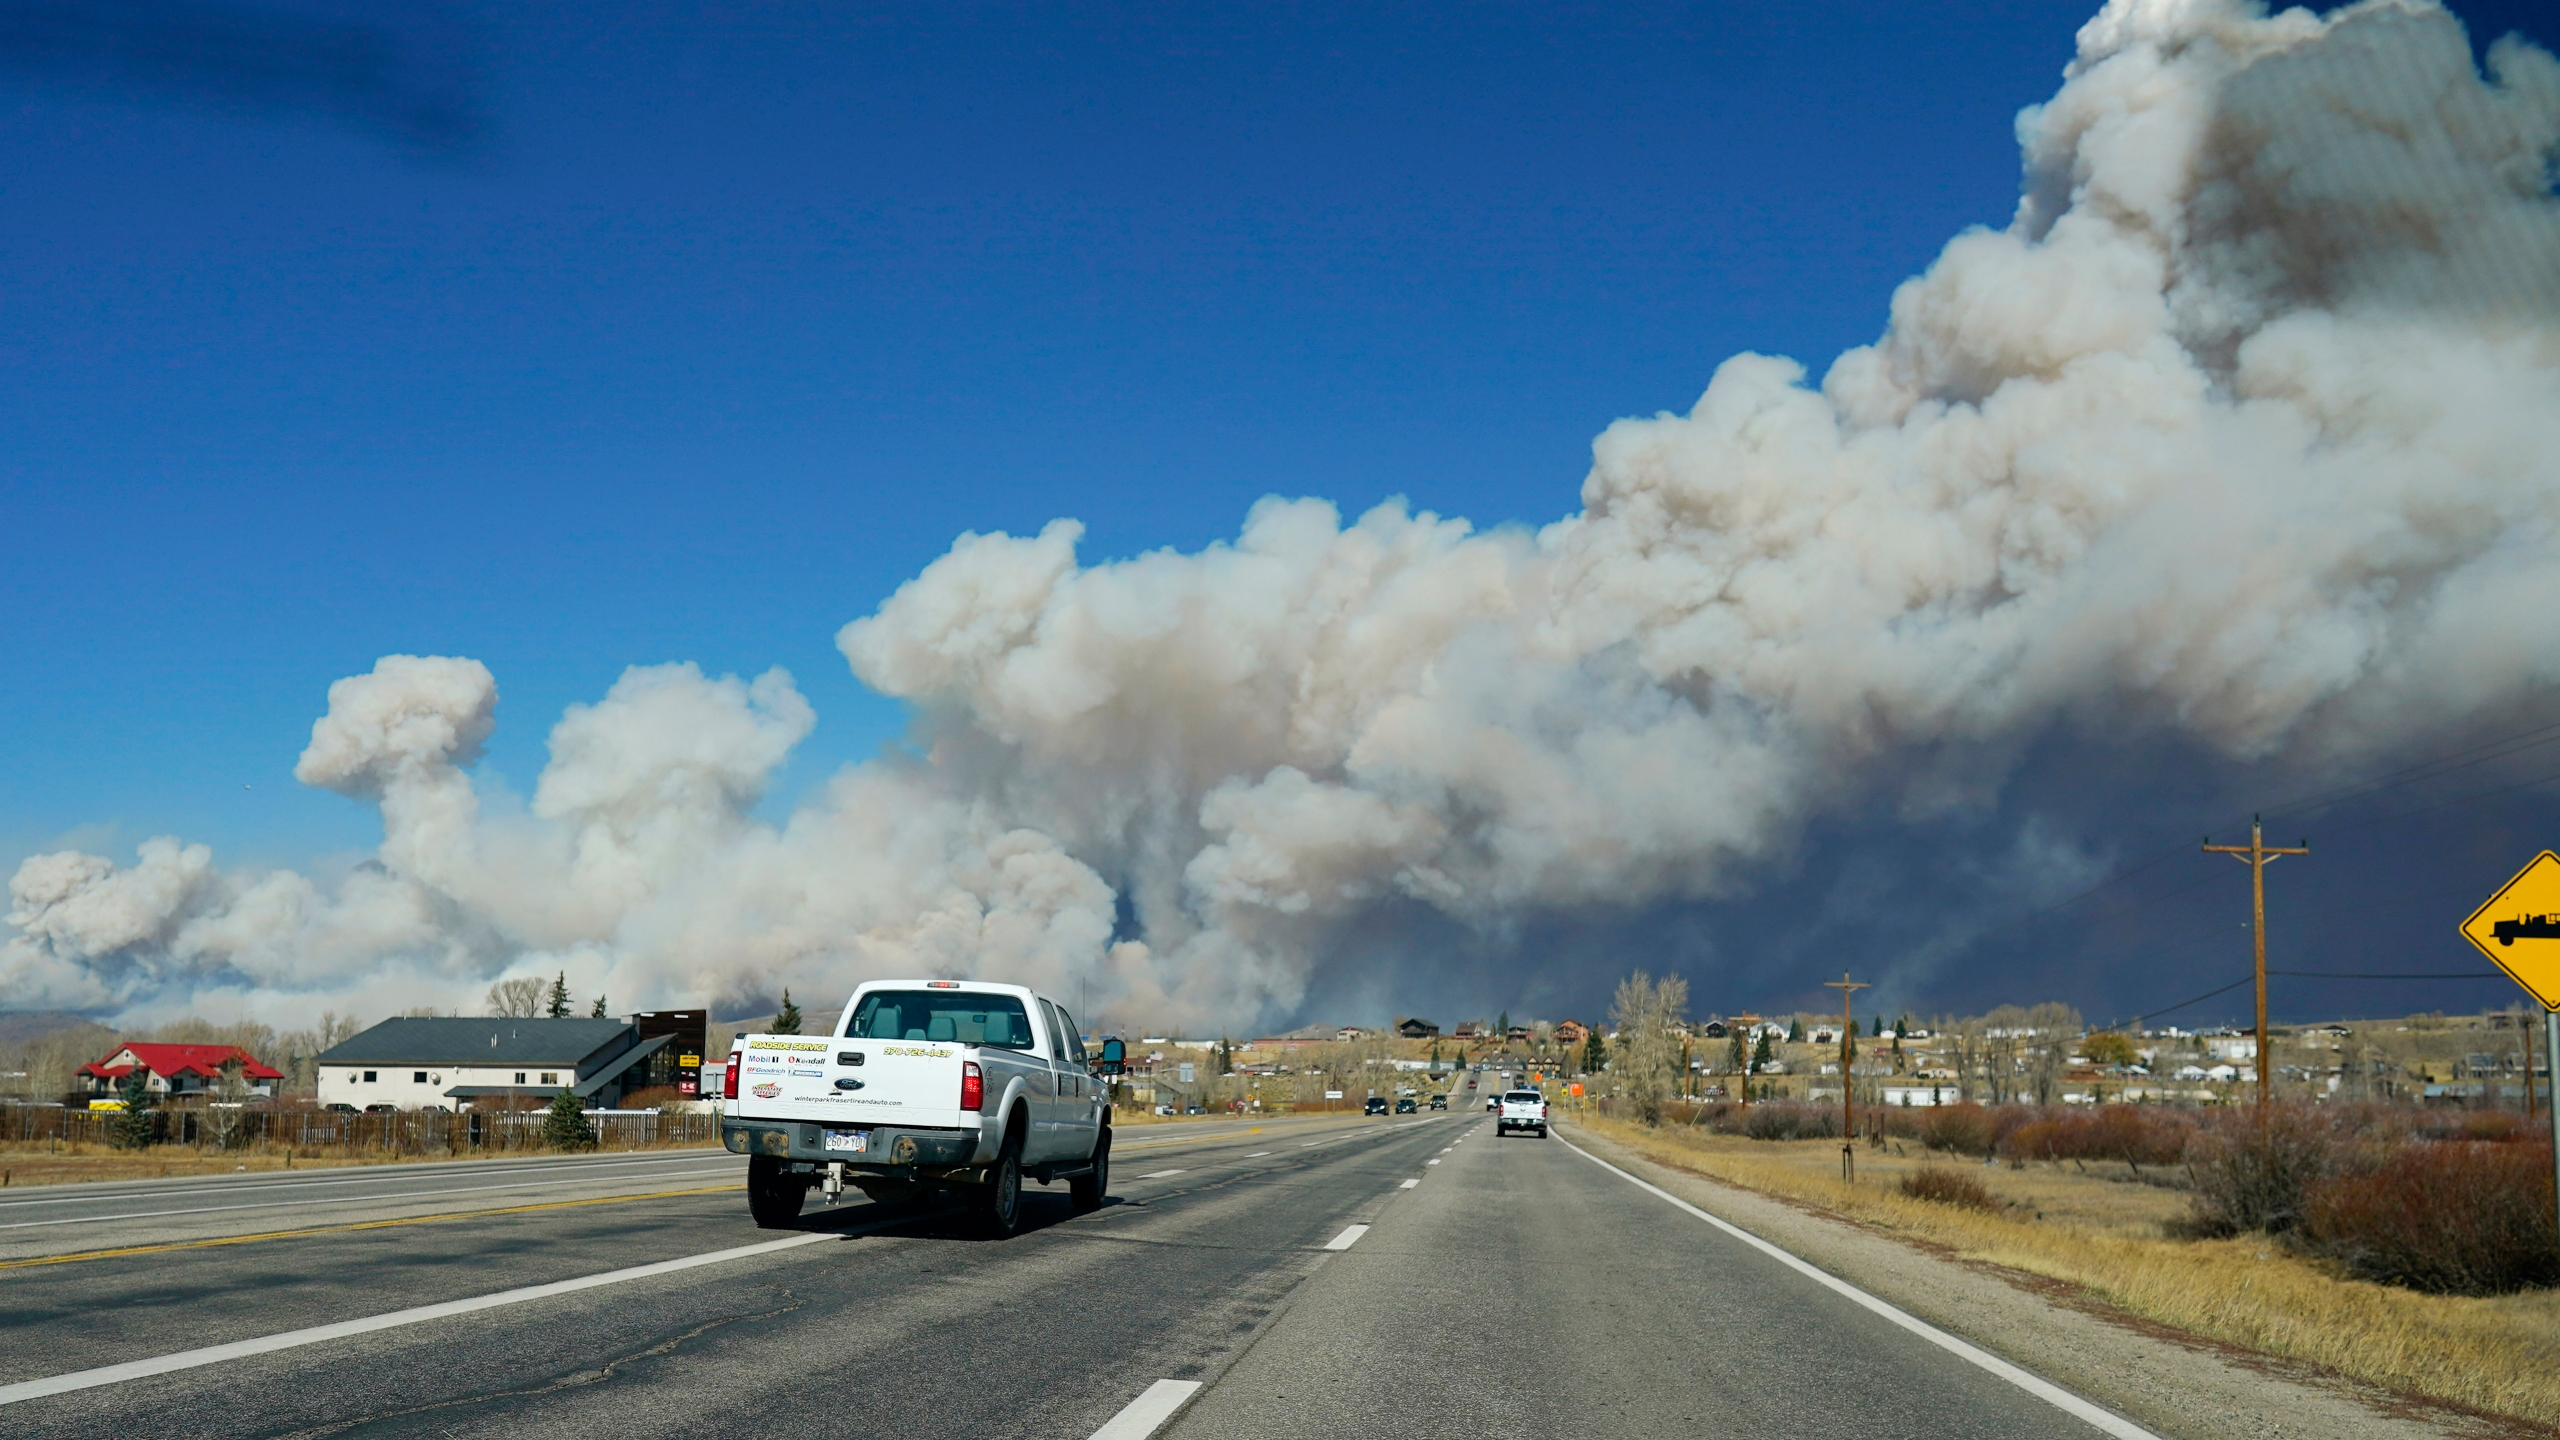 Smoke rises from mountain ridges as a wildfire burns while motorists head westbound along Highway 34 Thursday, Oct. 22, 2020, near Granby, Colo. (AP Photo/David Zalubowski)